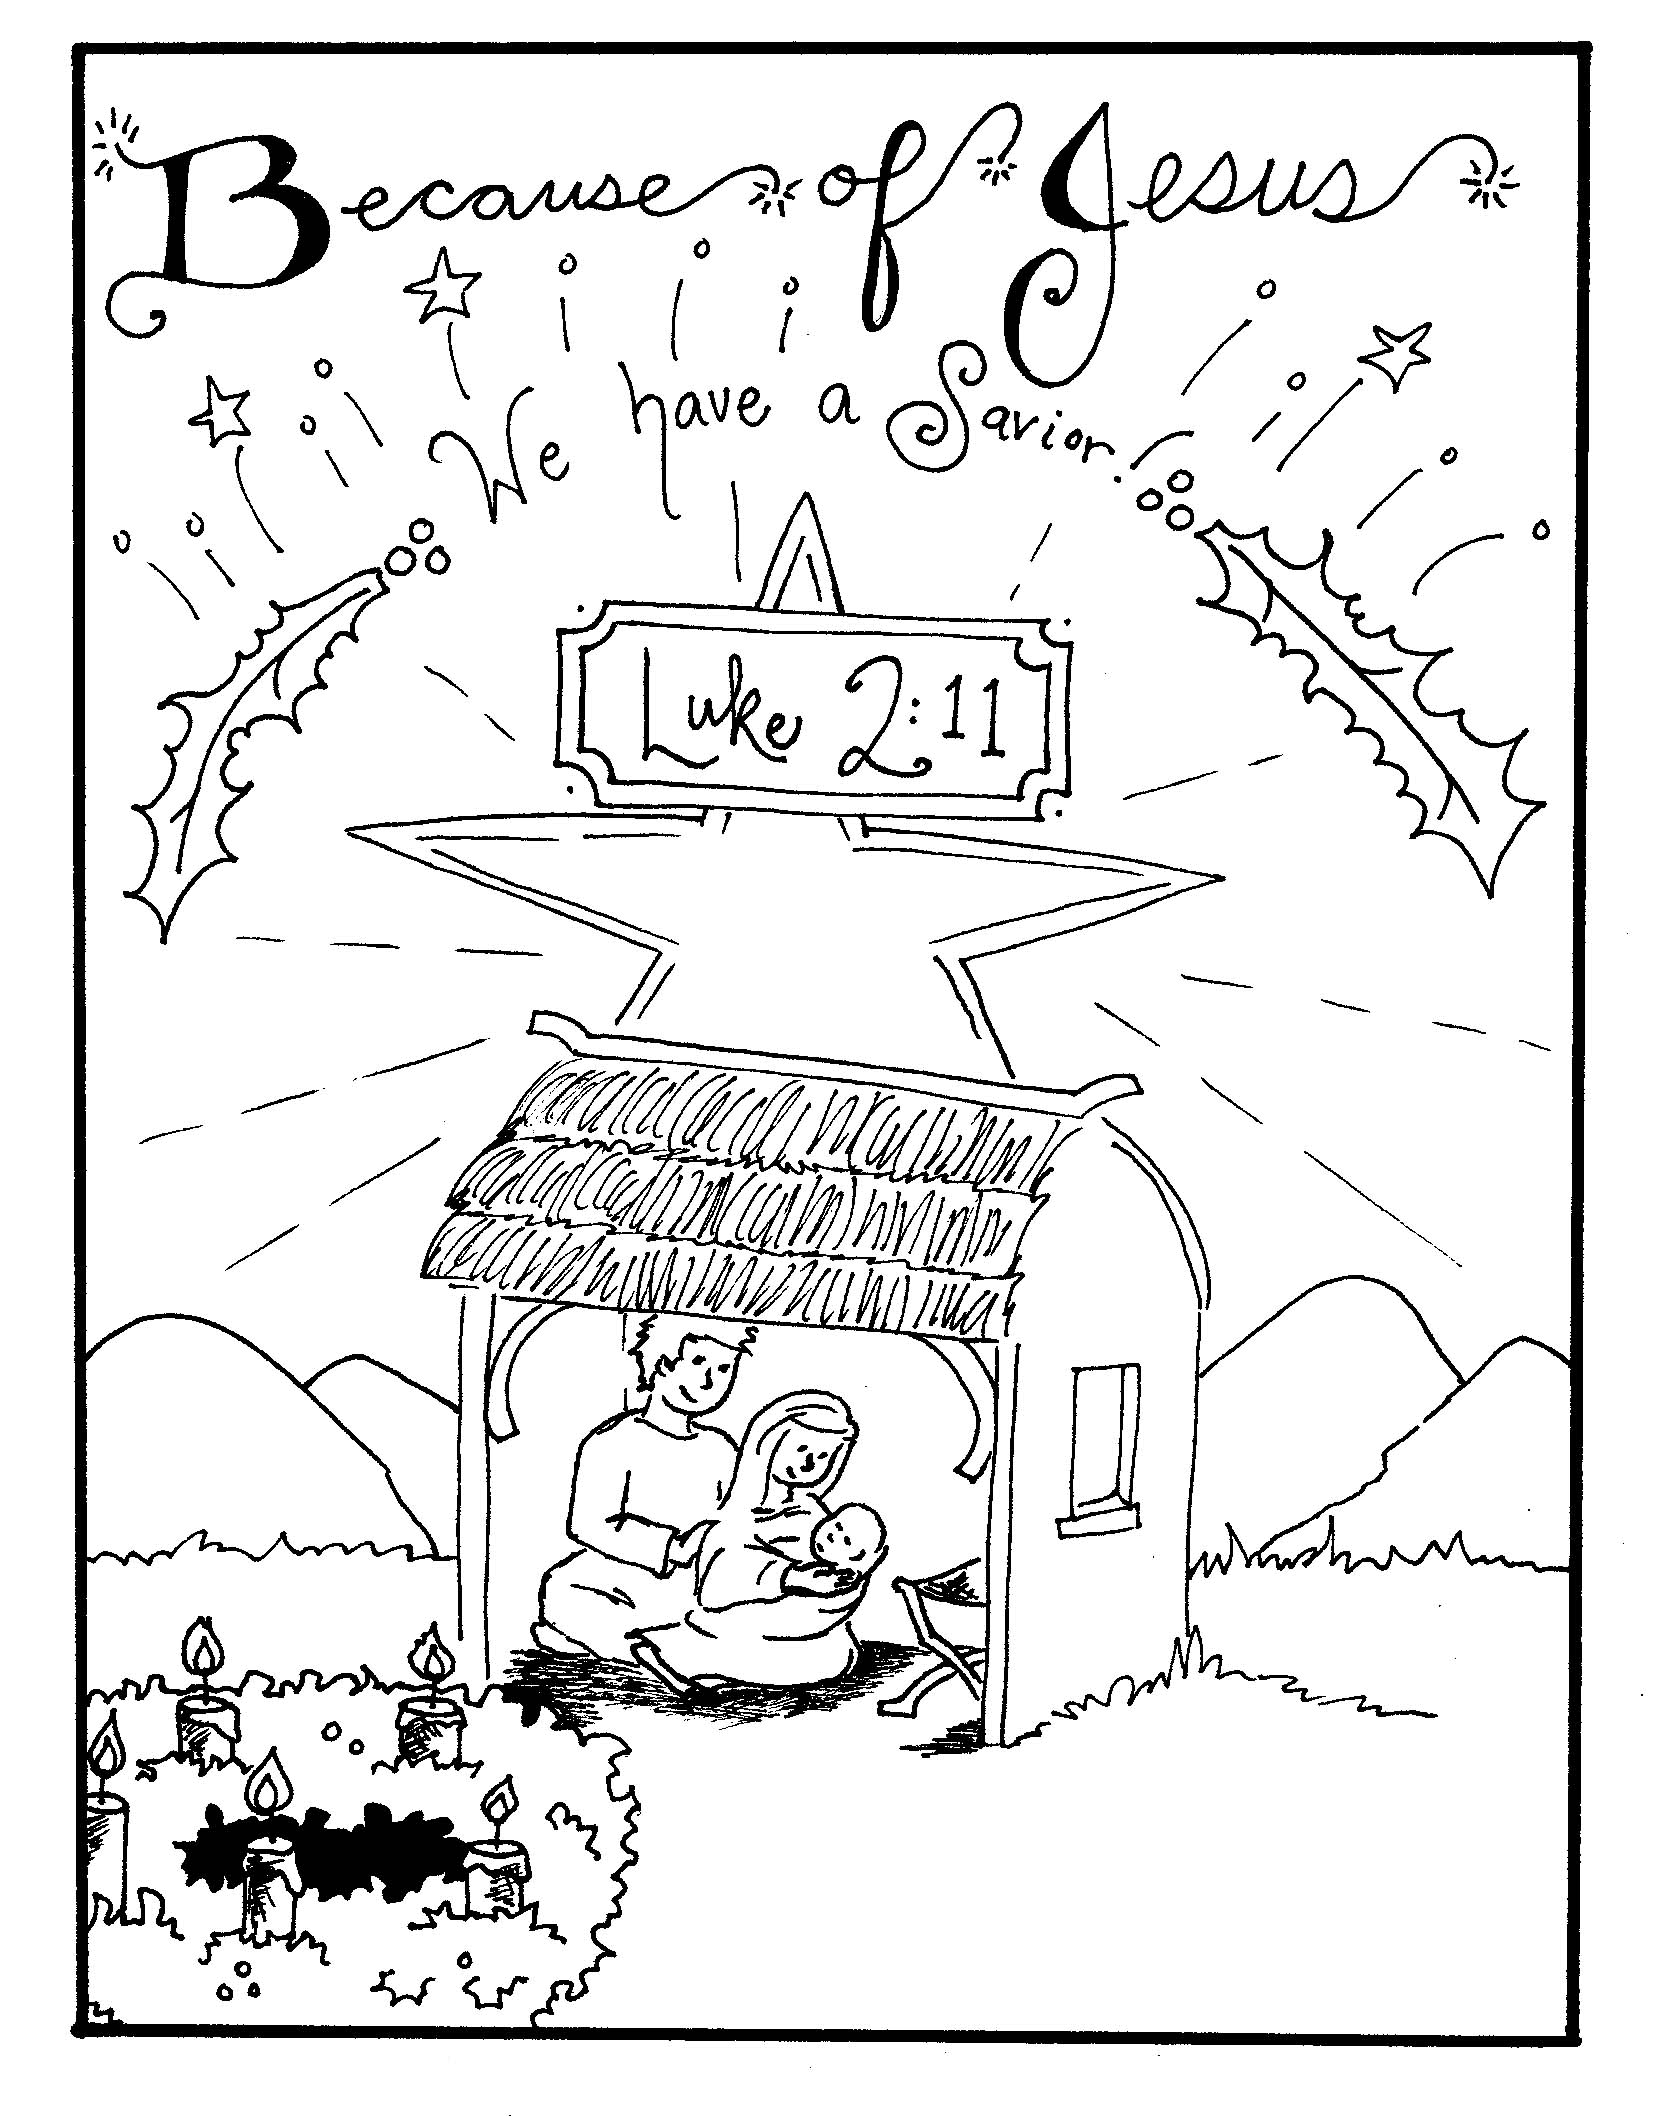 Christmas Nativity Coloring Pages To Print With Free Printable For Kids Best